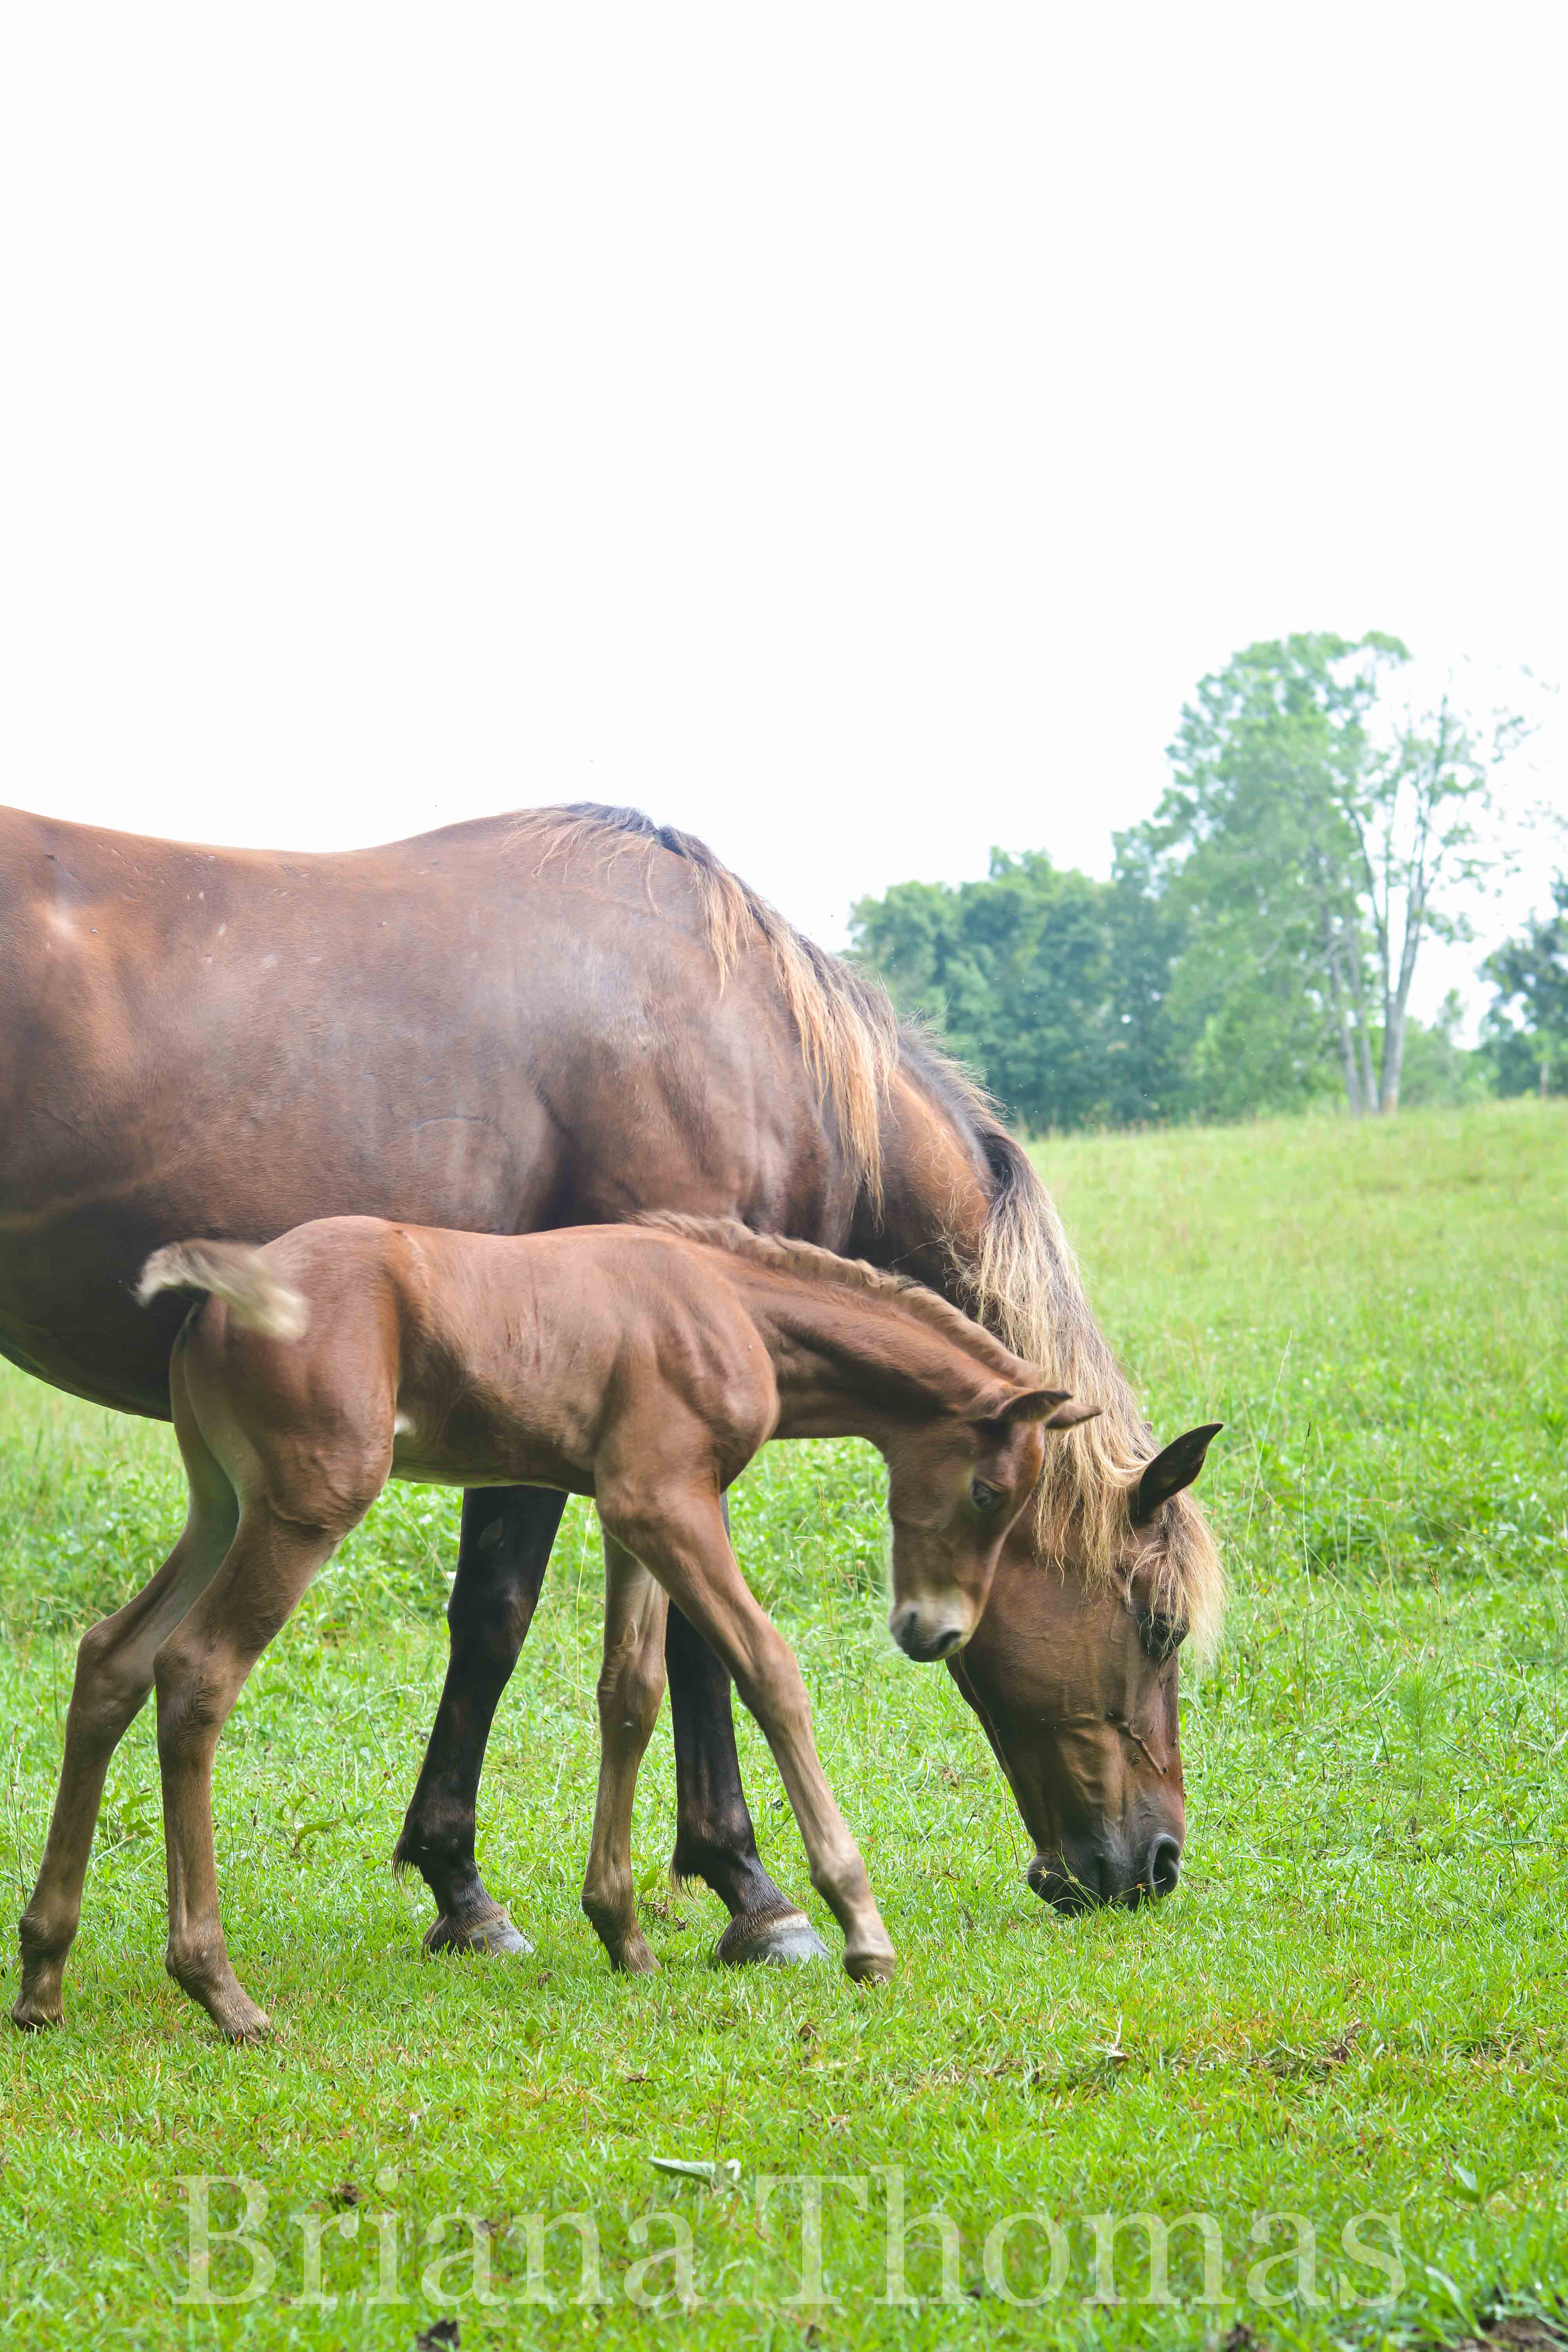 We have a new foal and he needs a name! Suggestions welcome. Sire is Rocky Mountain Man (Sewell's Sam son) and dam is Sweetwater's Peaches & Crème.